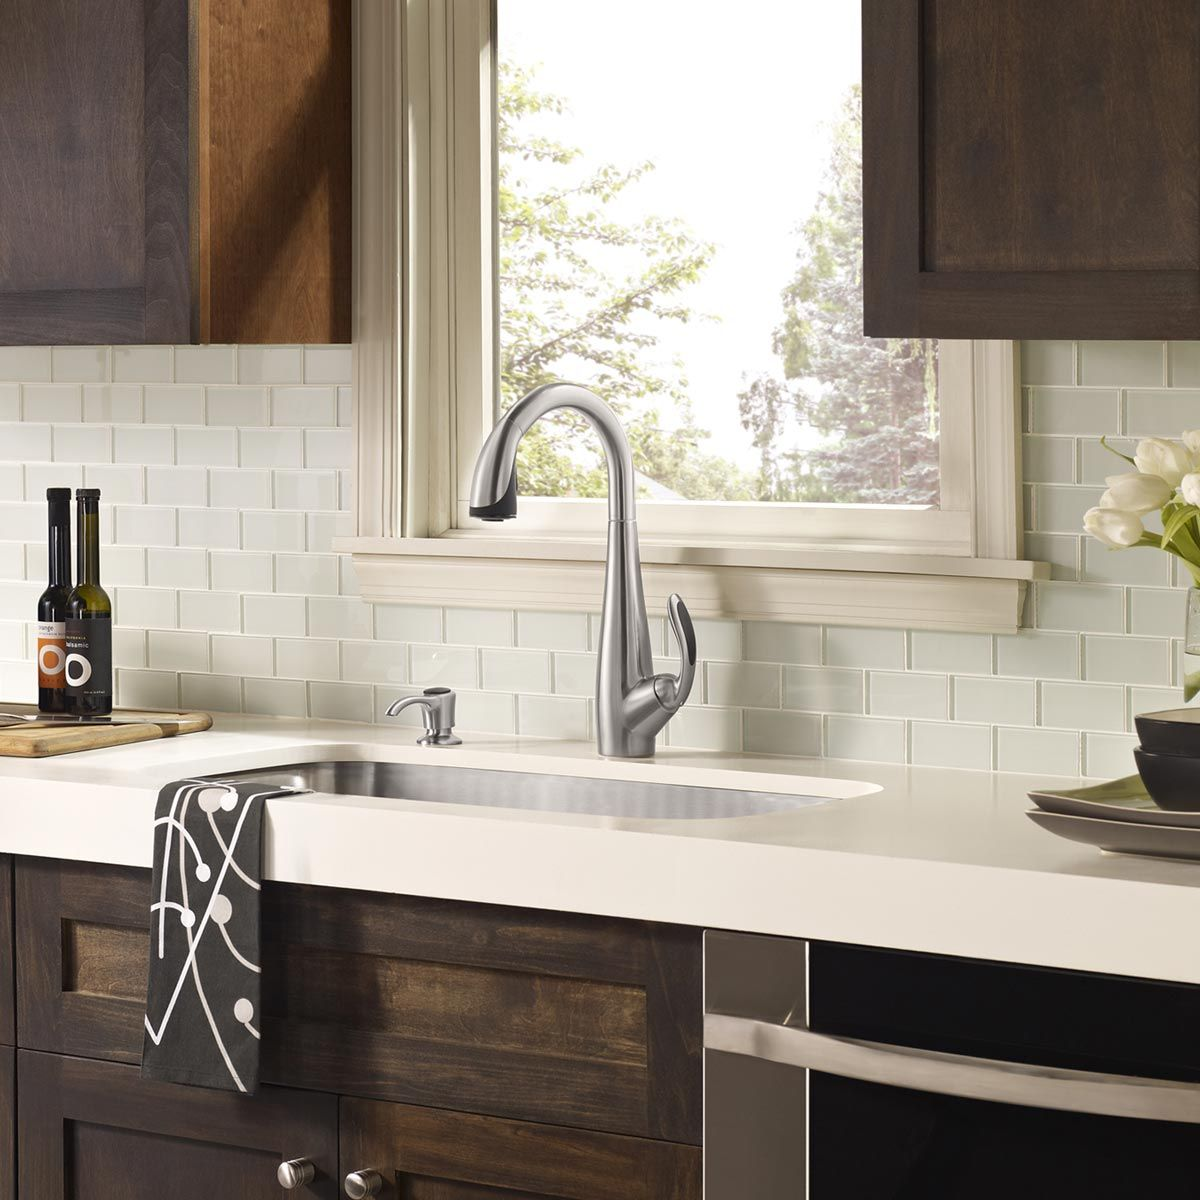 Backsplash White Cabinets White Glass Tile Backsplash White Countertop With Dark